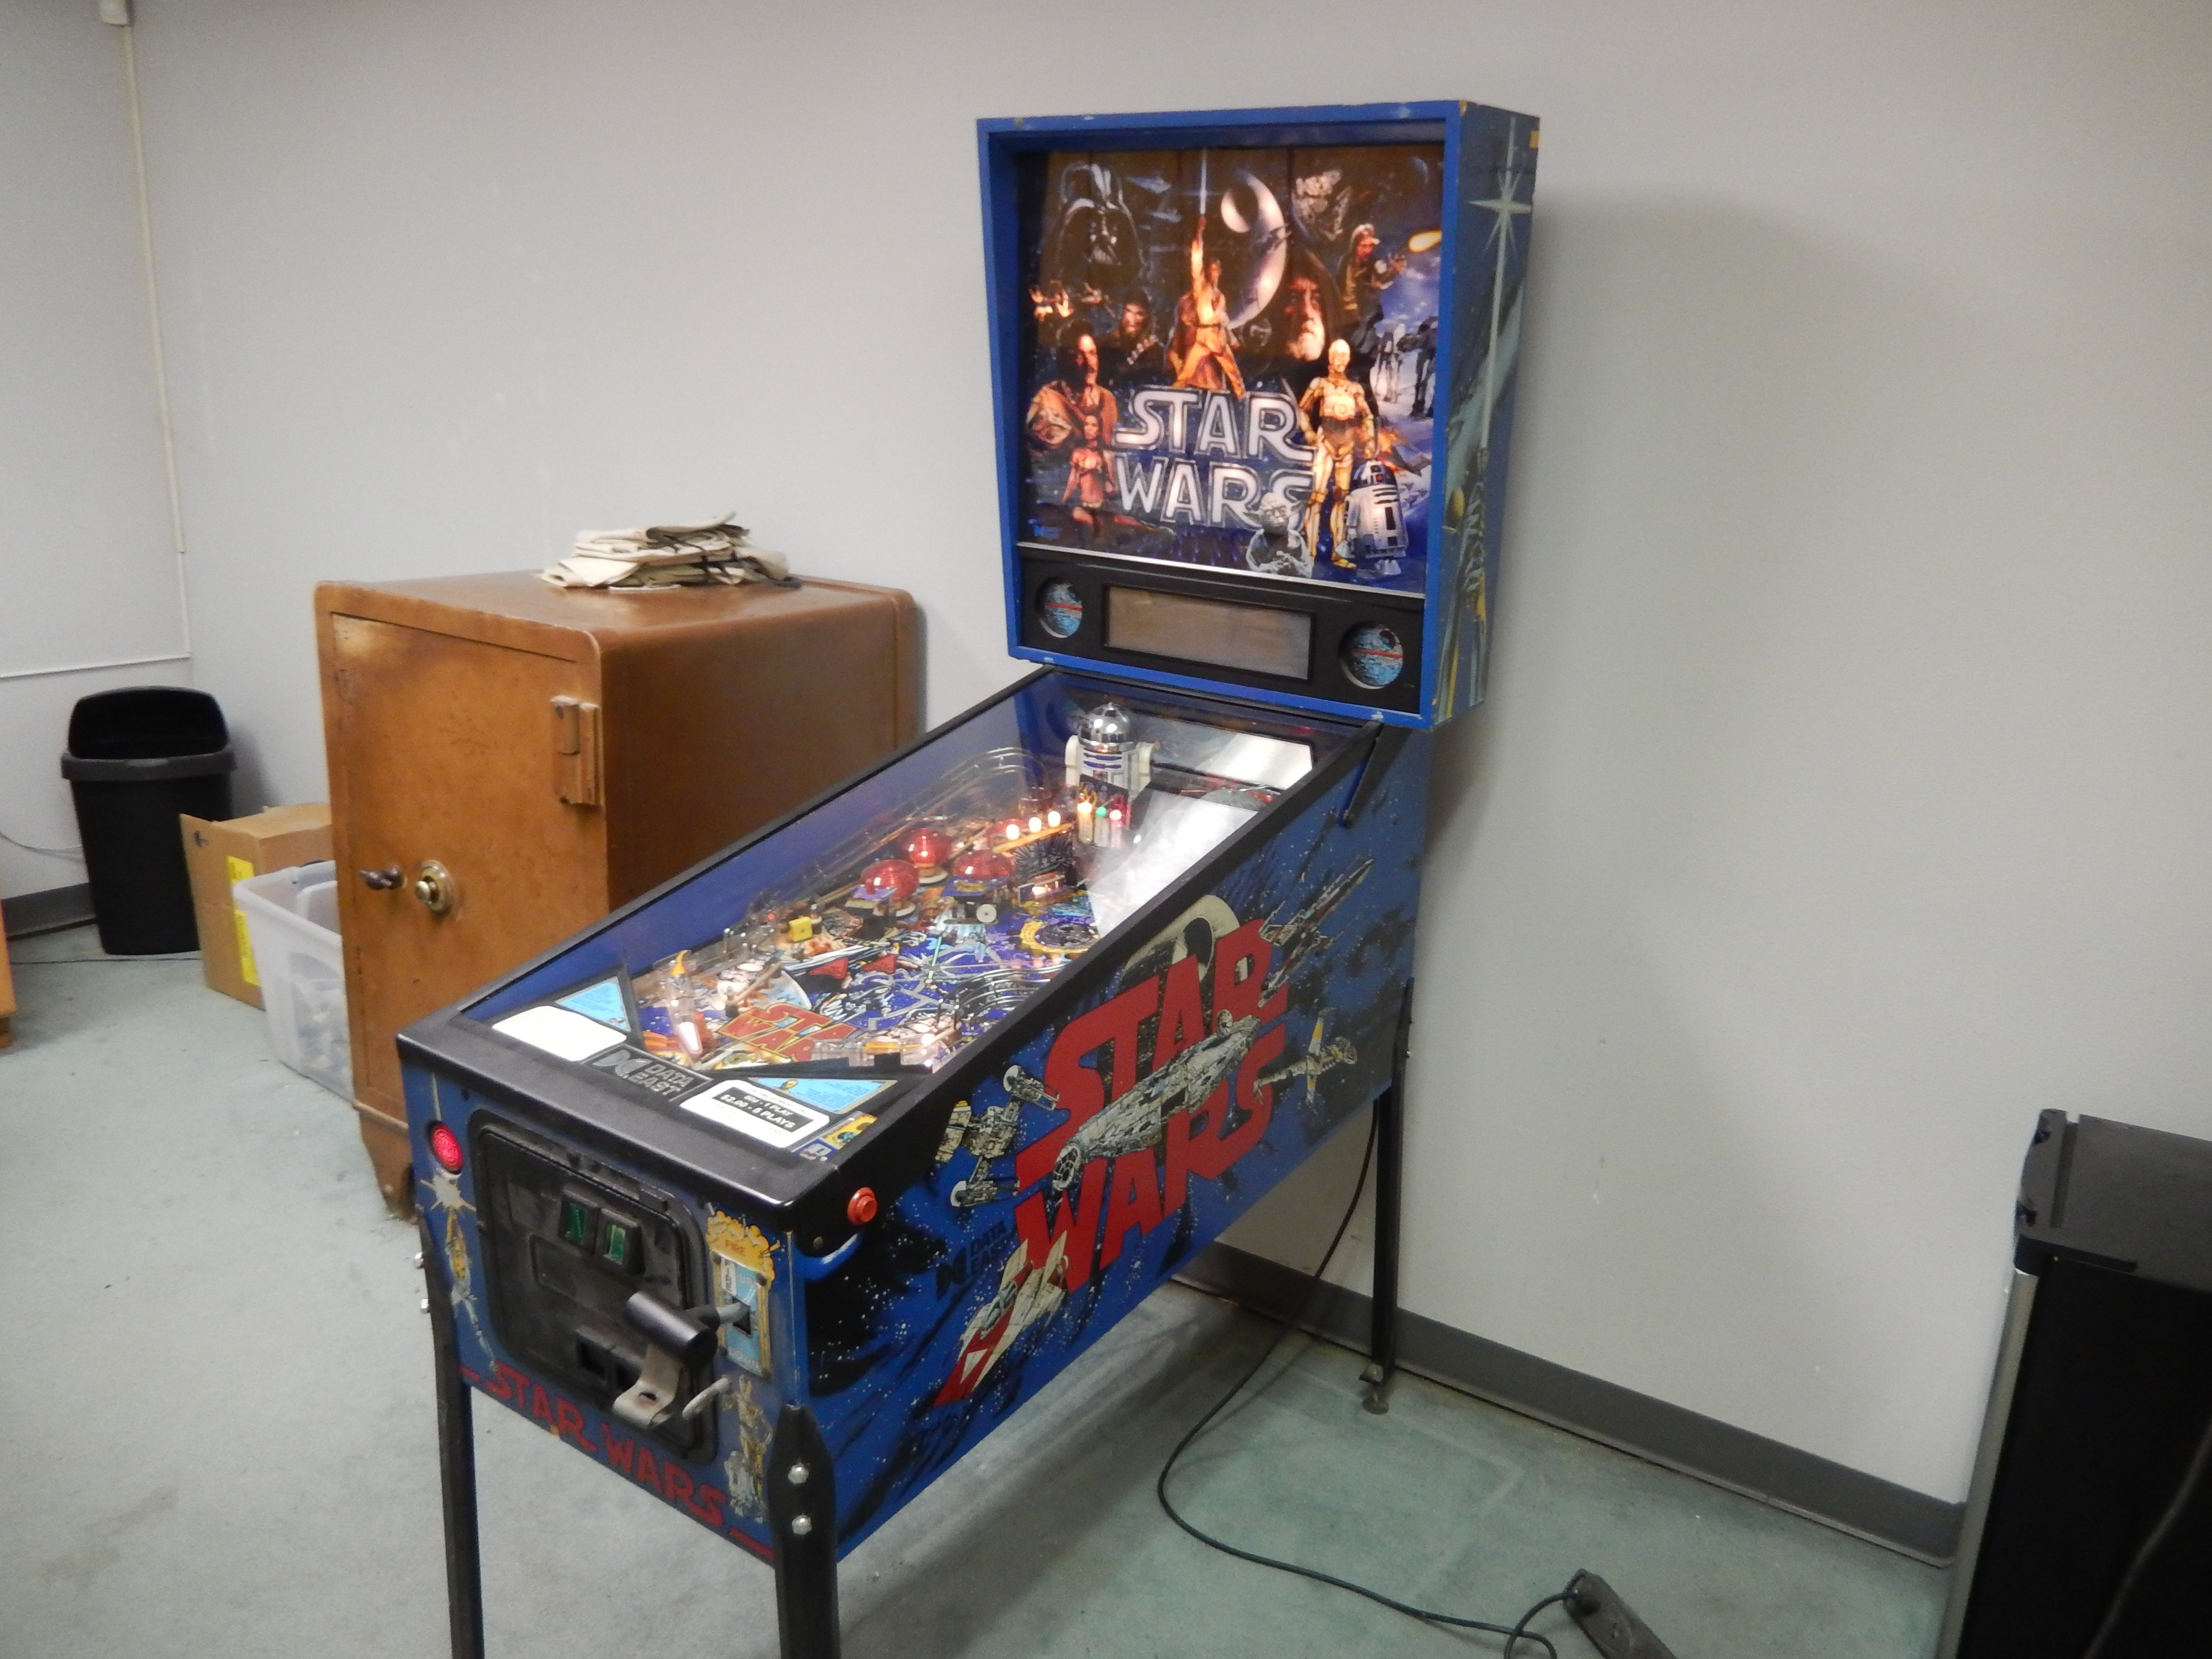 Full view DataEast Star Wars pinball machine for sale in